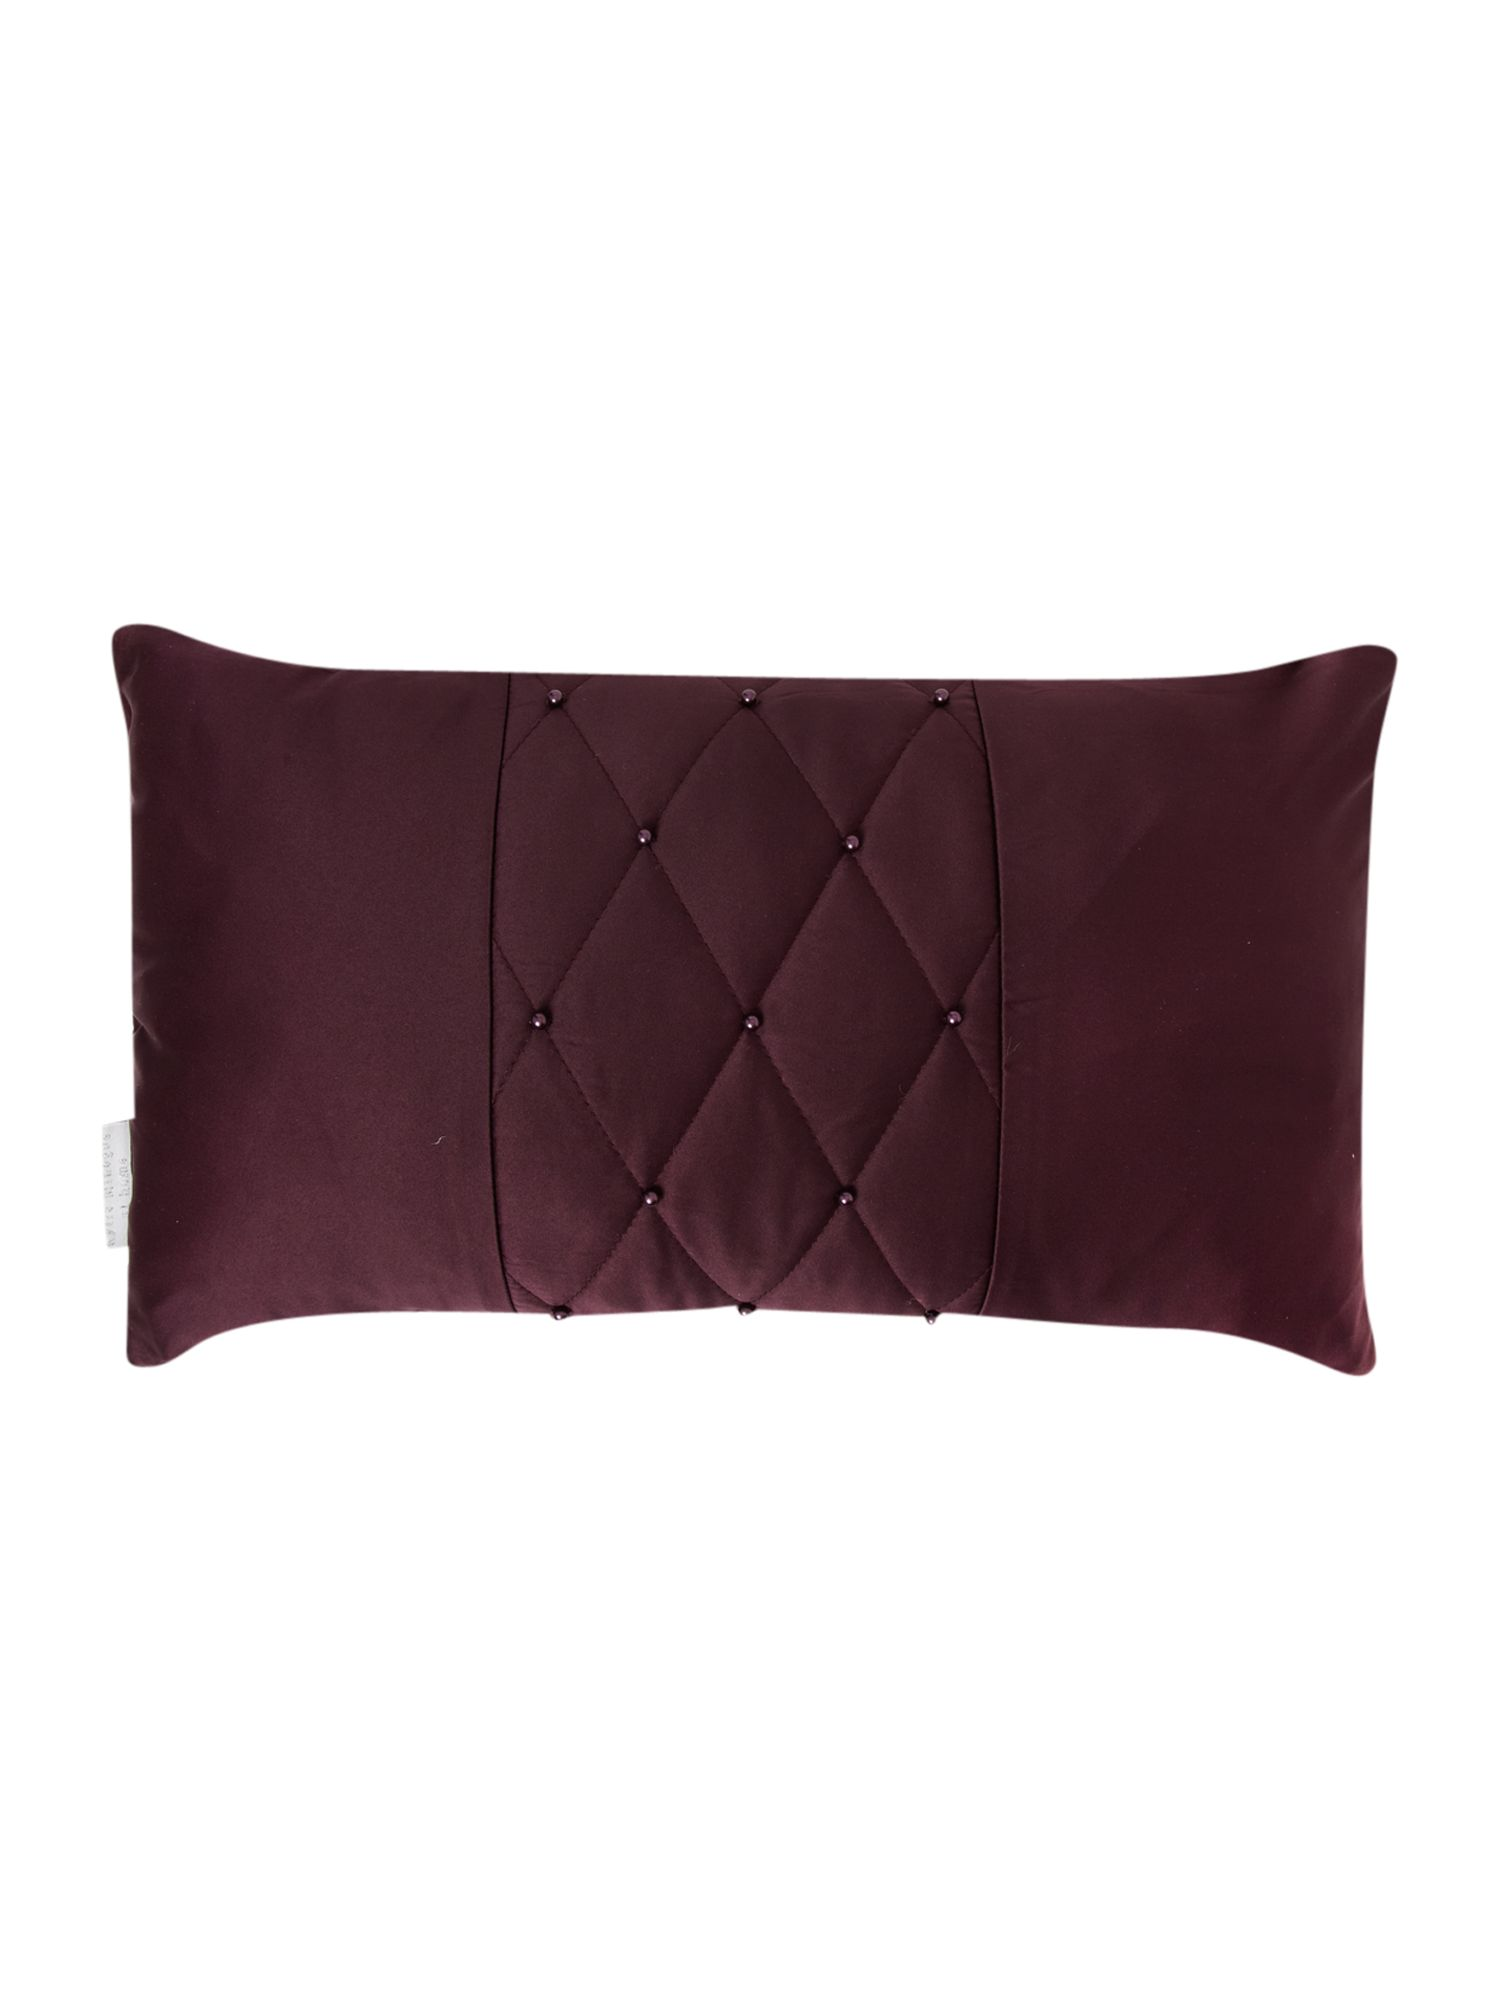 Liverna cushion damson